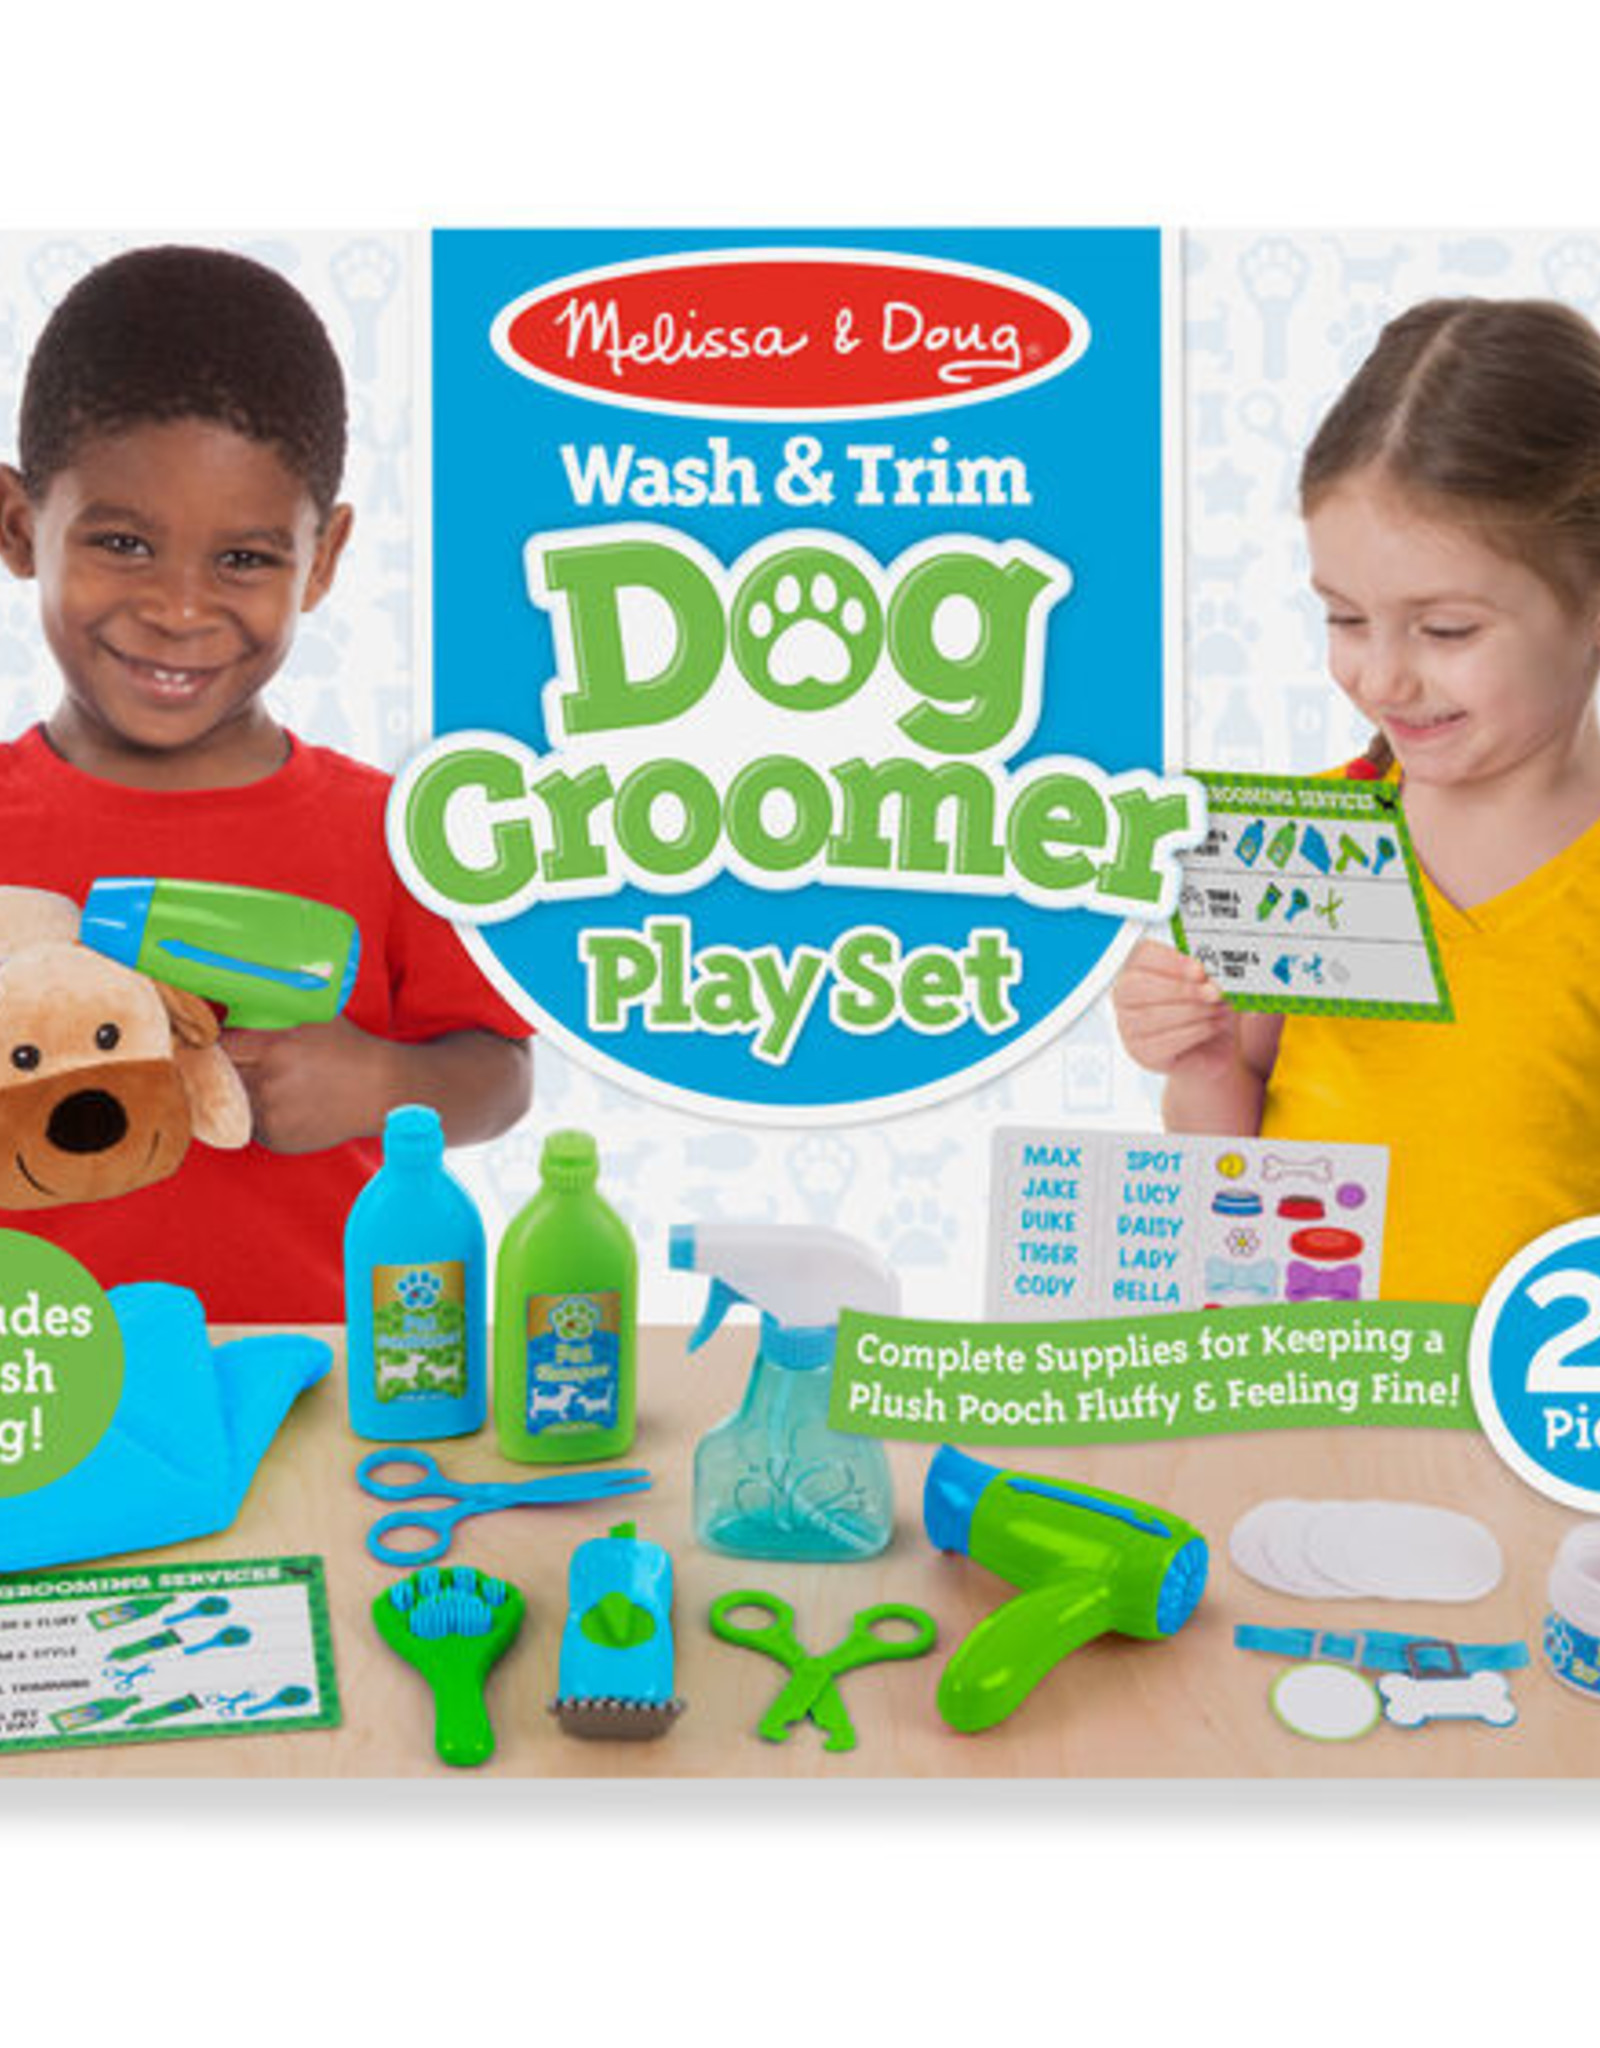 Melissa & Doug MD DOG GROOMER PLAYSET